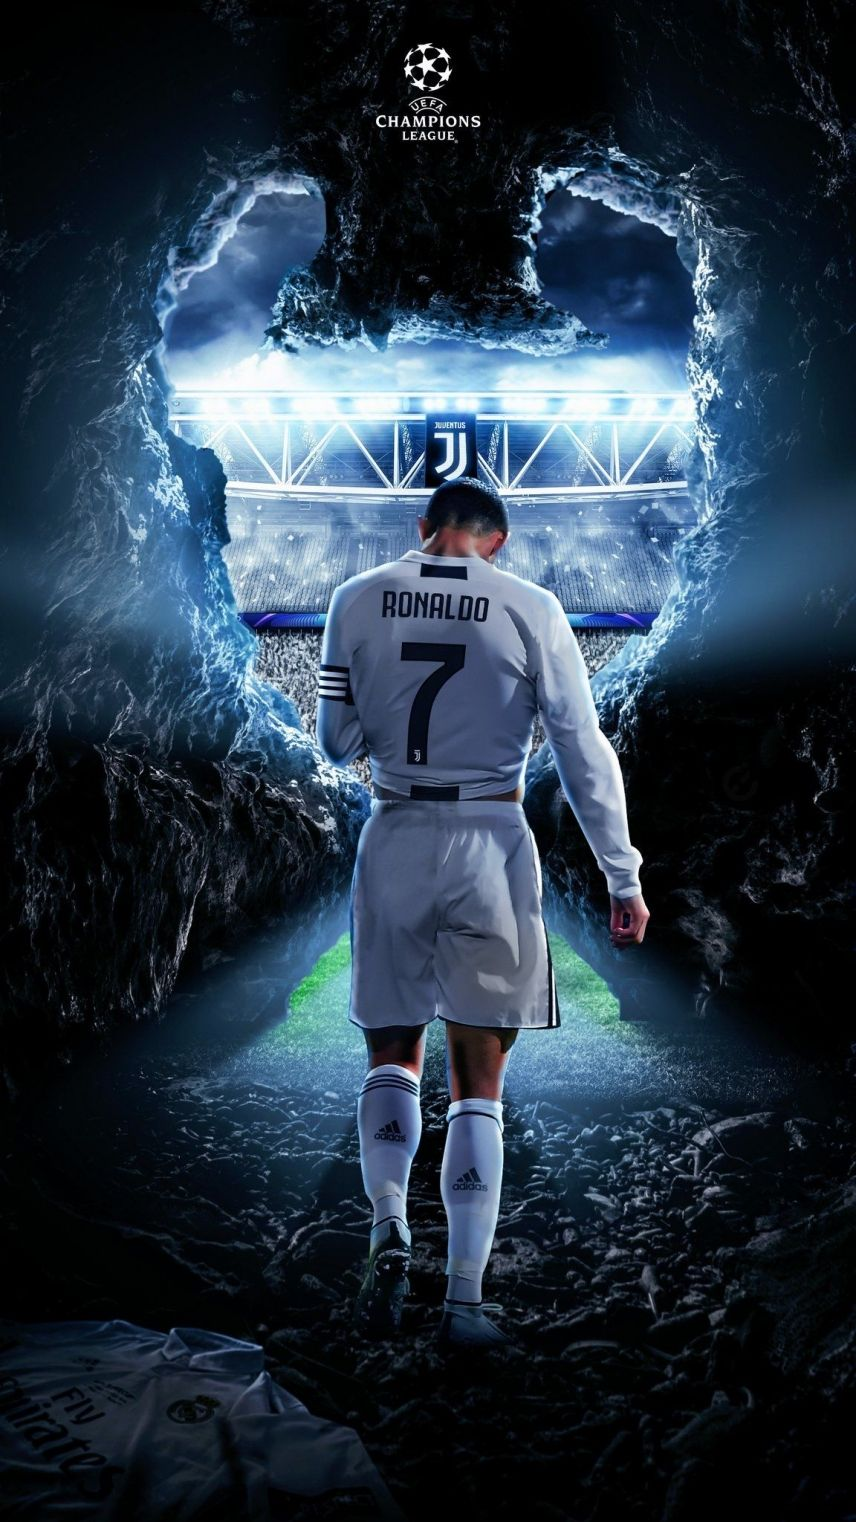 43 Ronaldo 2020 Wallpapers On Wallpapersafari